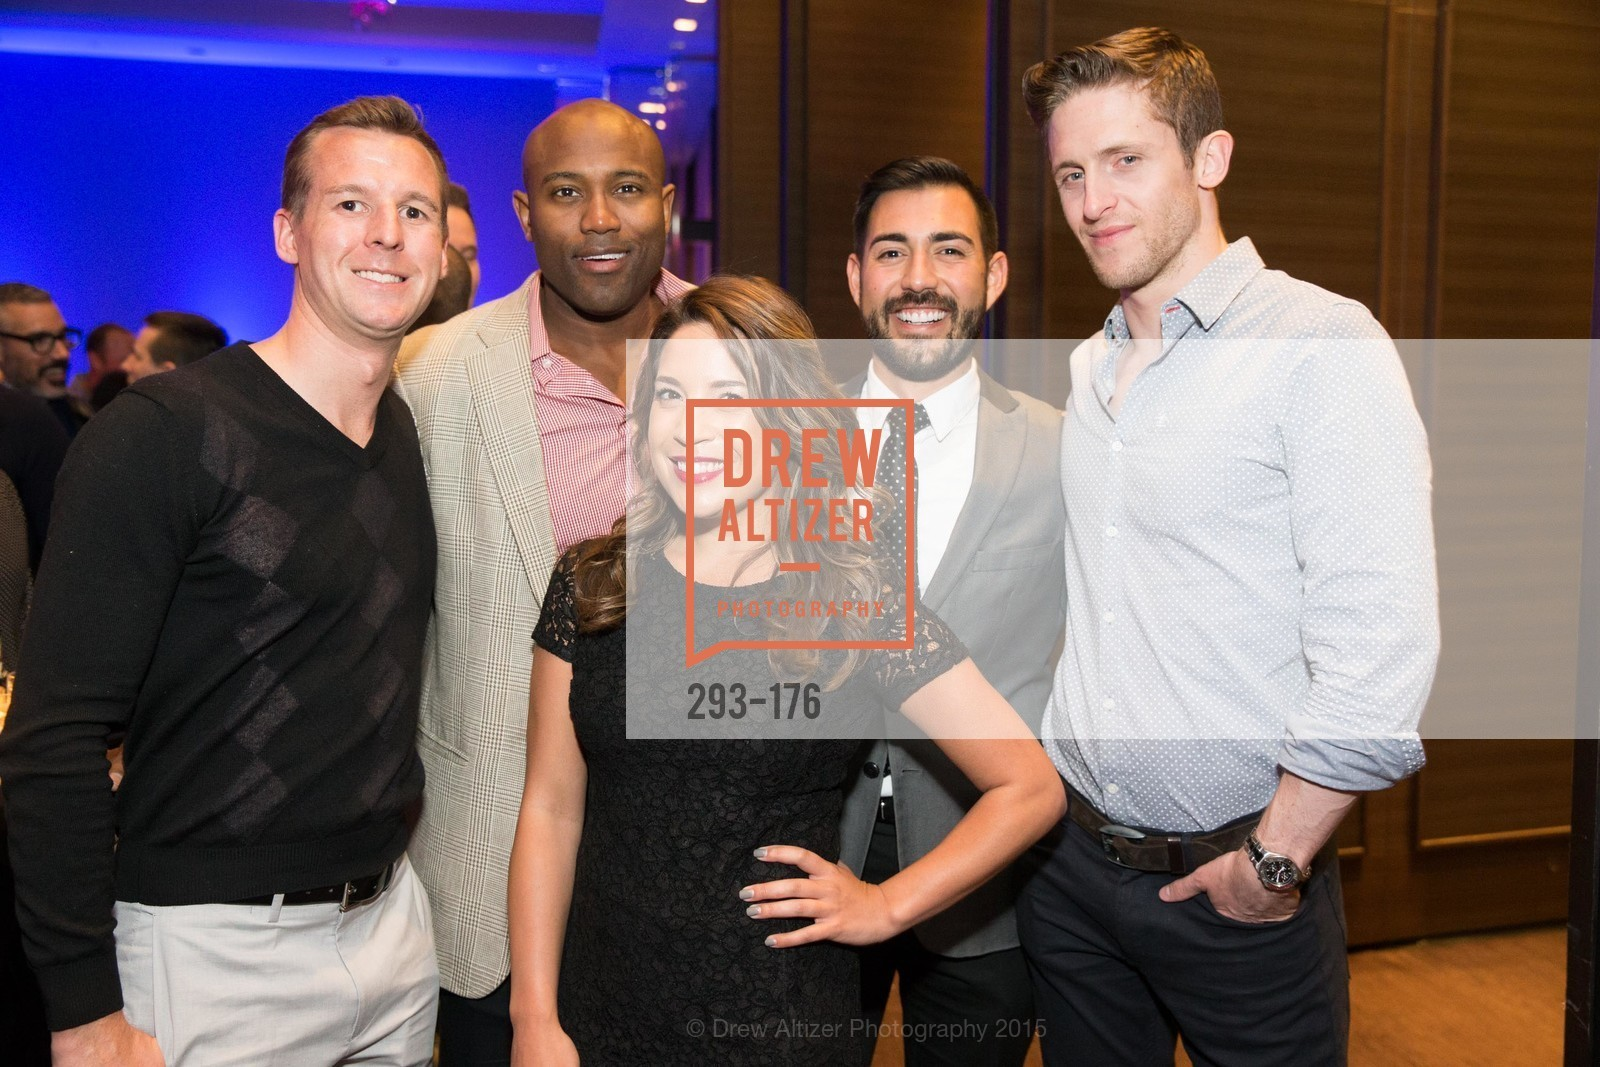 Anthony Brichetto, David Sims, Michelle Balance, Tony Lopez, VIP Pride Celebration 2015, St. Regis, June 18th, 2015,Drew Altizer, Drew Altizer Photography, full-service agency, private events, San Francisco photographer, photographer california